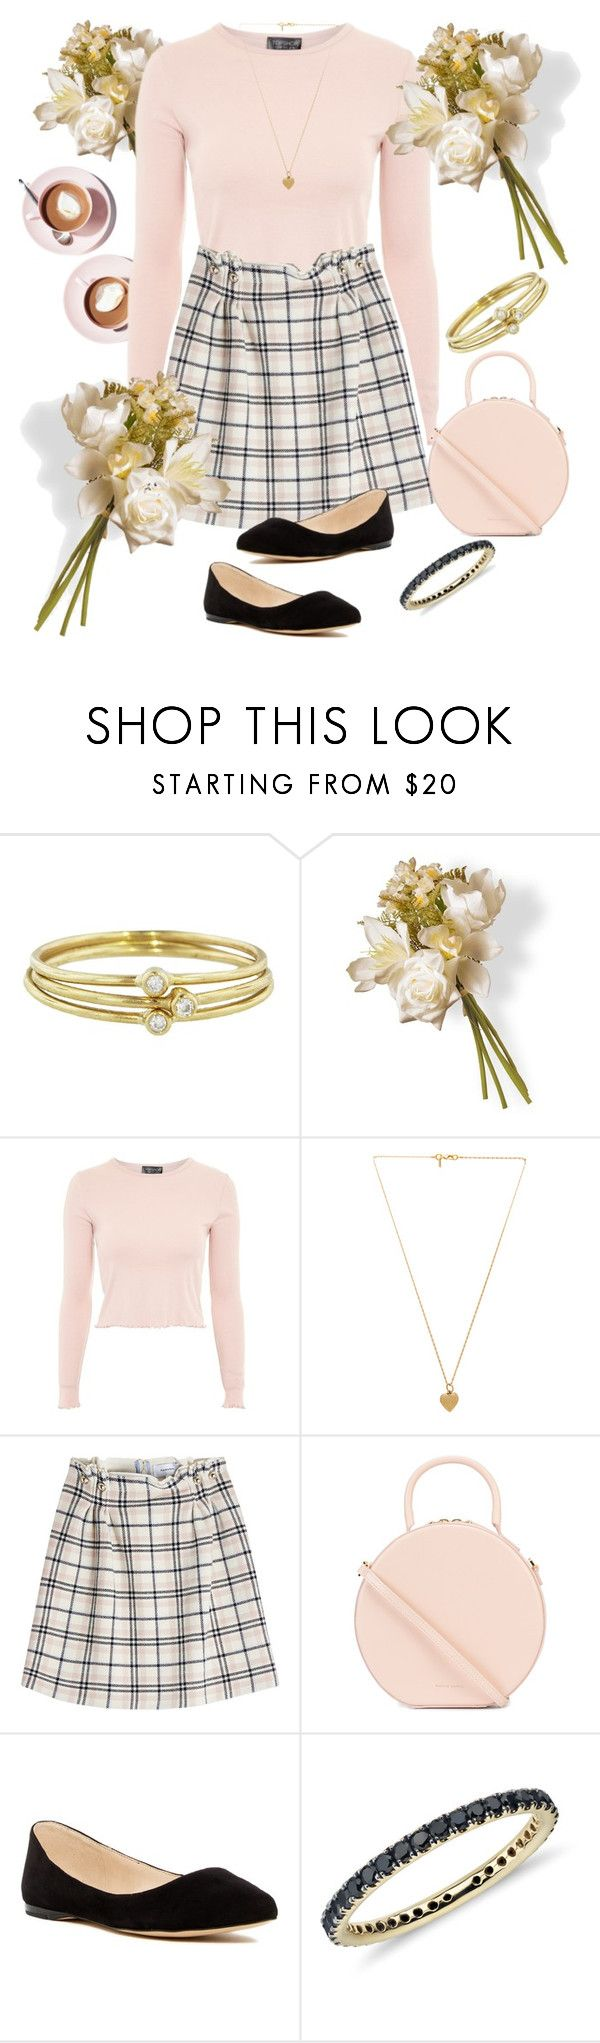 """""""Untitled"""" by valente-i ❤ liked on Polyvore featuring Jennifer Meyer Jewelry, National Tree Company, Topshop, Vanessa Mooney, Carven, Mansur Gavriel, Nine West and Blue Nile"""